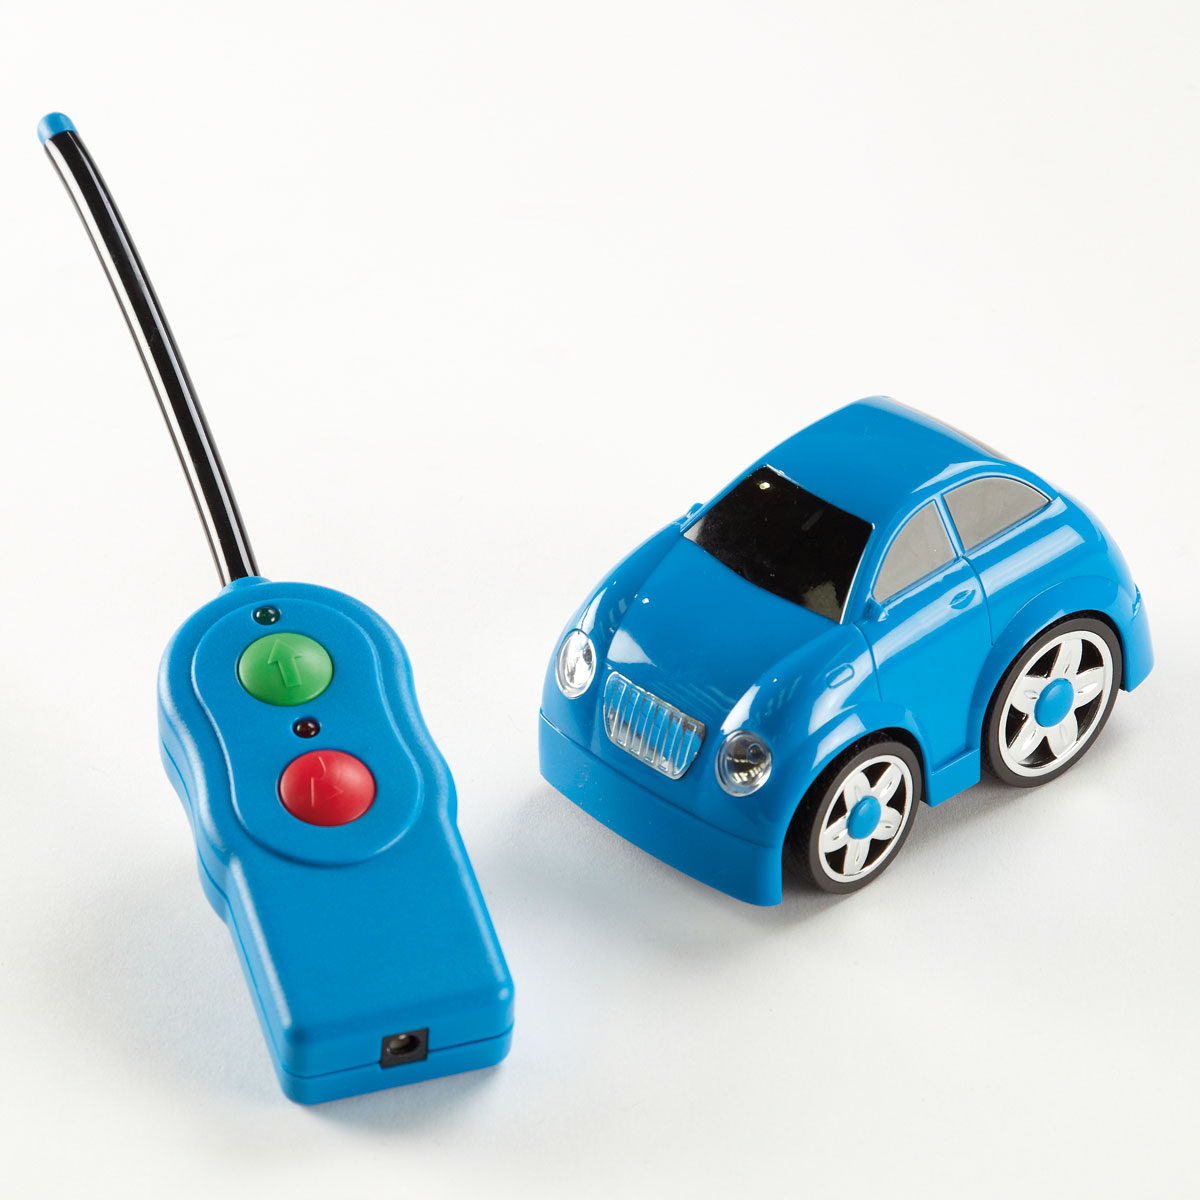 TTS Easi-Cars & Docking Station - Rechargeable Remote Control Cars on science toys, classic toys, jack box toys, remote aircraft toys, rc toys, cool toys, remote tank that shoots 22 bullet, army toys, outdoor toys, pedal powered toys, newest flying toys, electronic toys, bluetooth control toys, car control toys, sports toys, 6 volt toys, cars 2 toys, riding toys, case toys, remote controlled cars product, wooden toys, building toys, tablet controlled toys, musical toys,